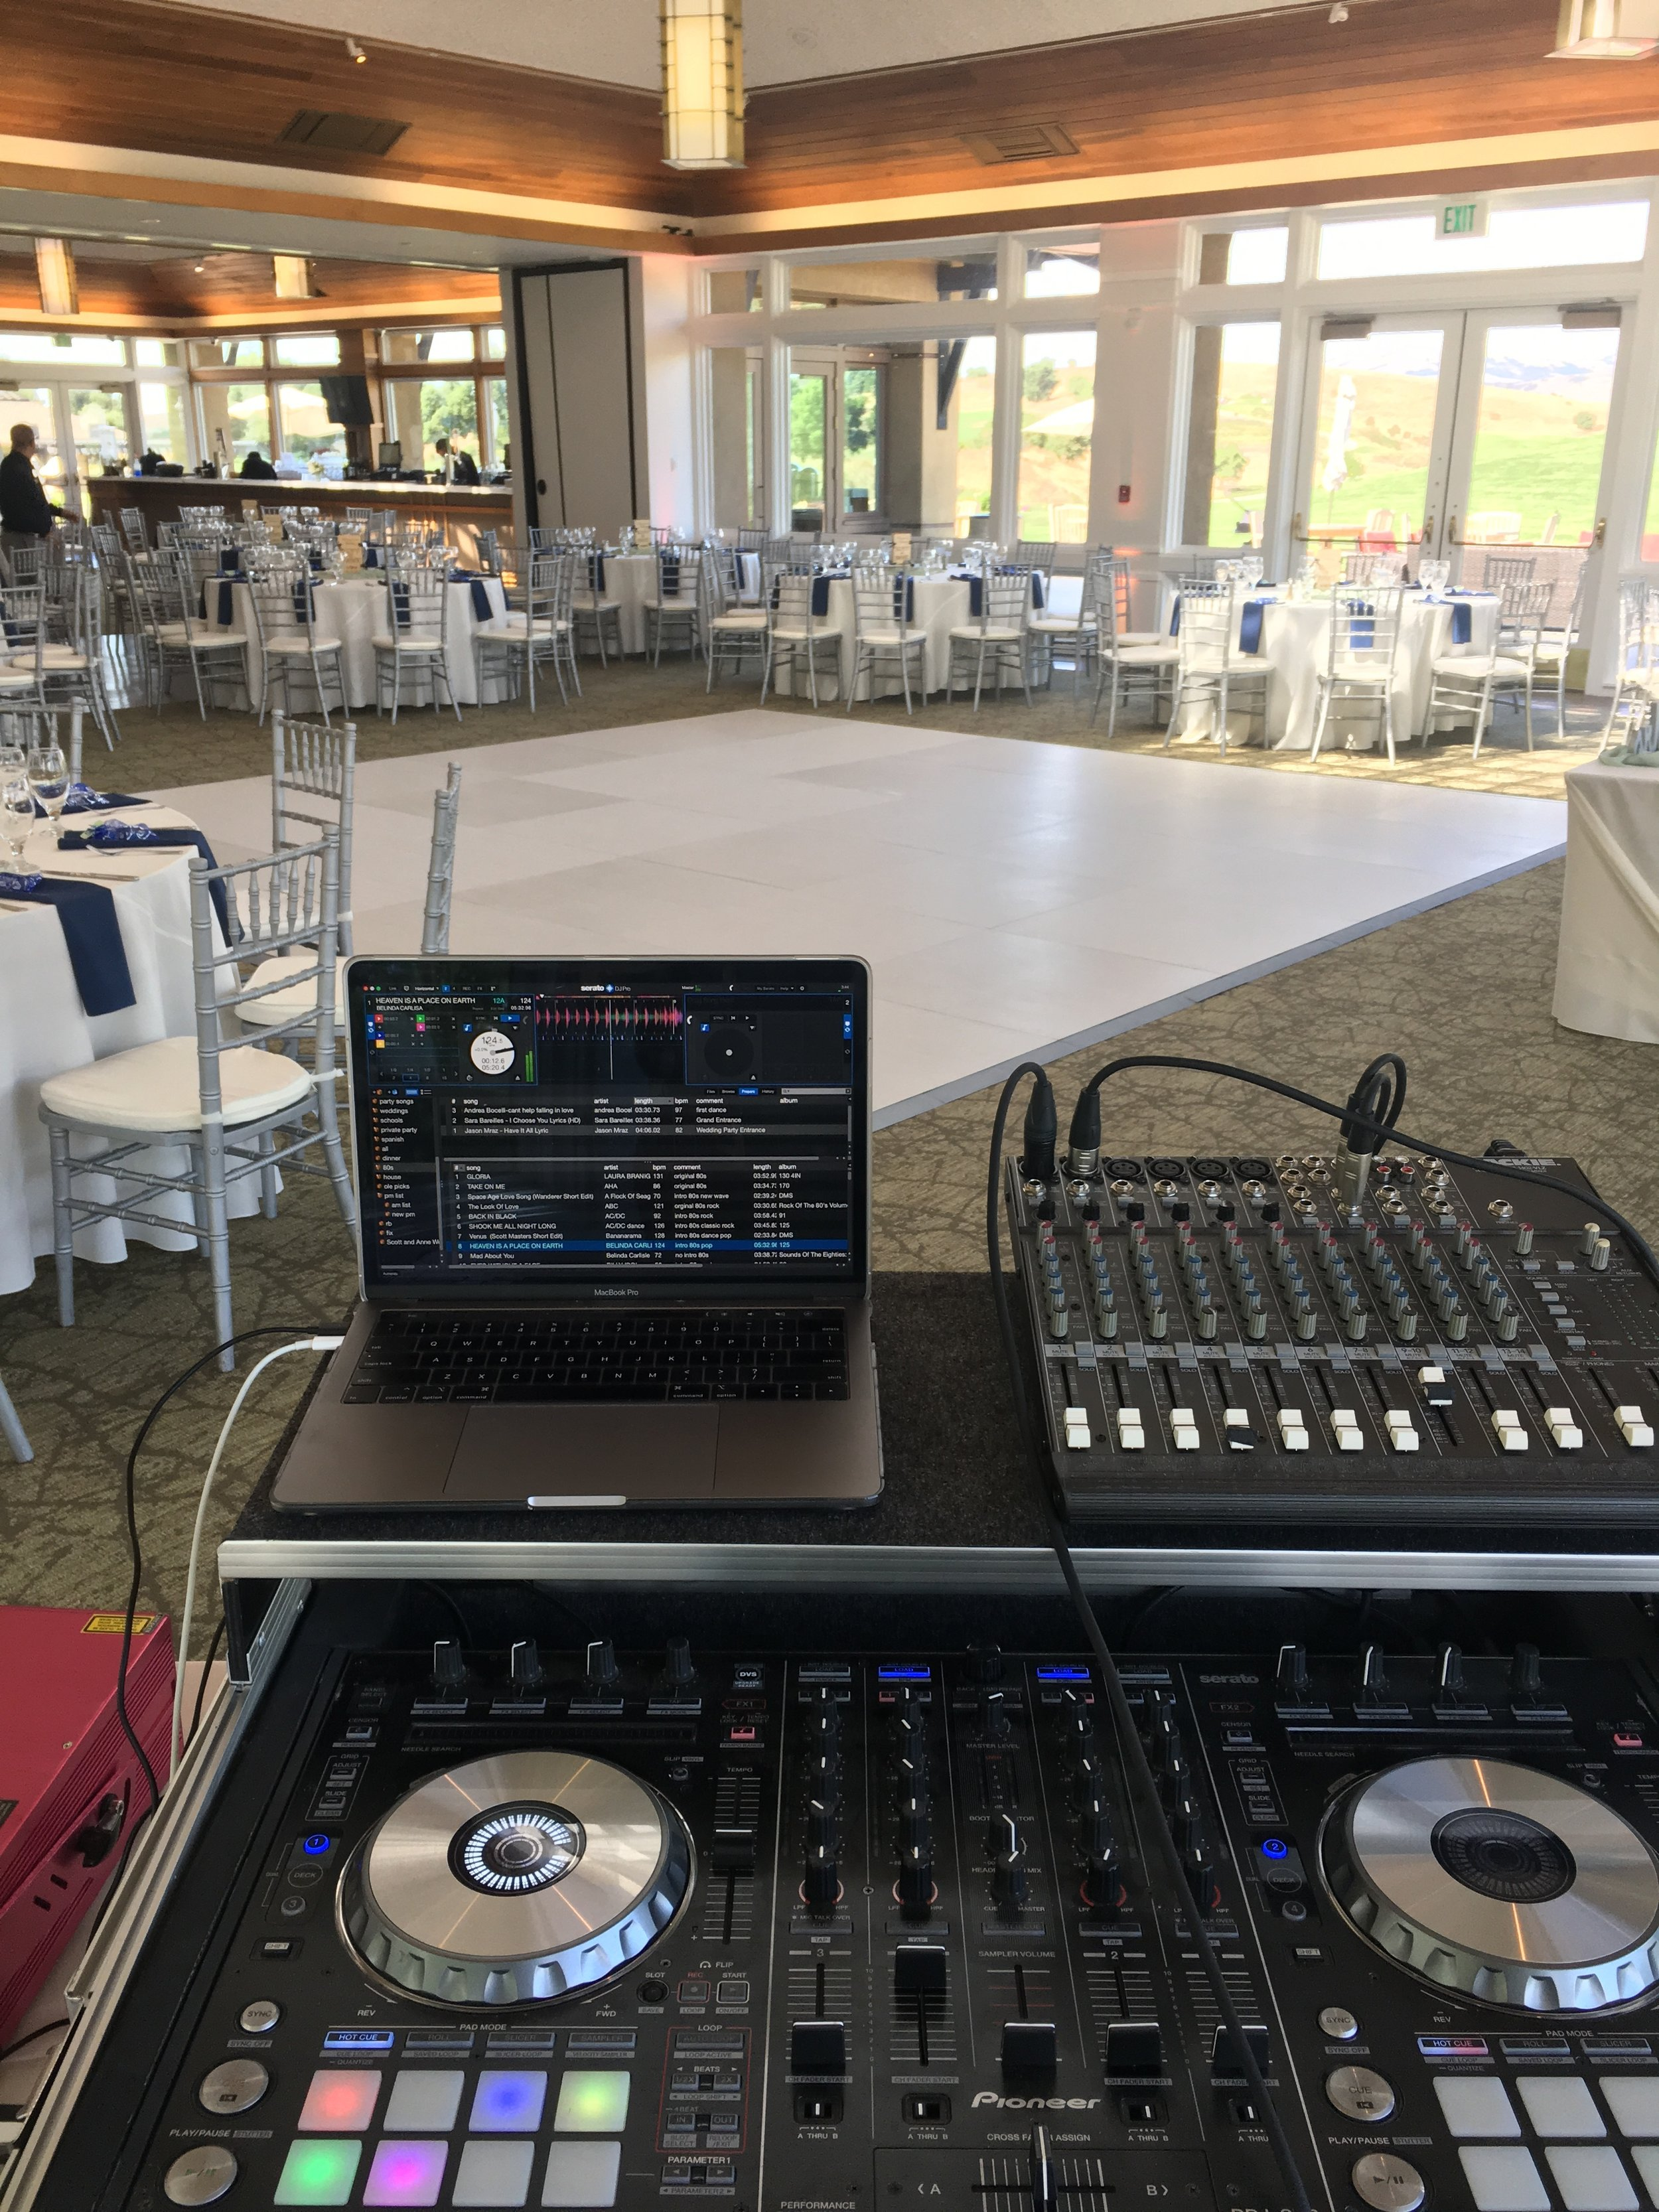 Cinnabar San Jose Morgan Hill Wedding Dj.jpg